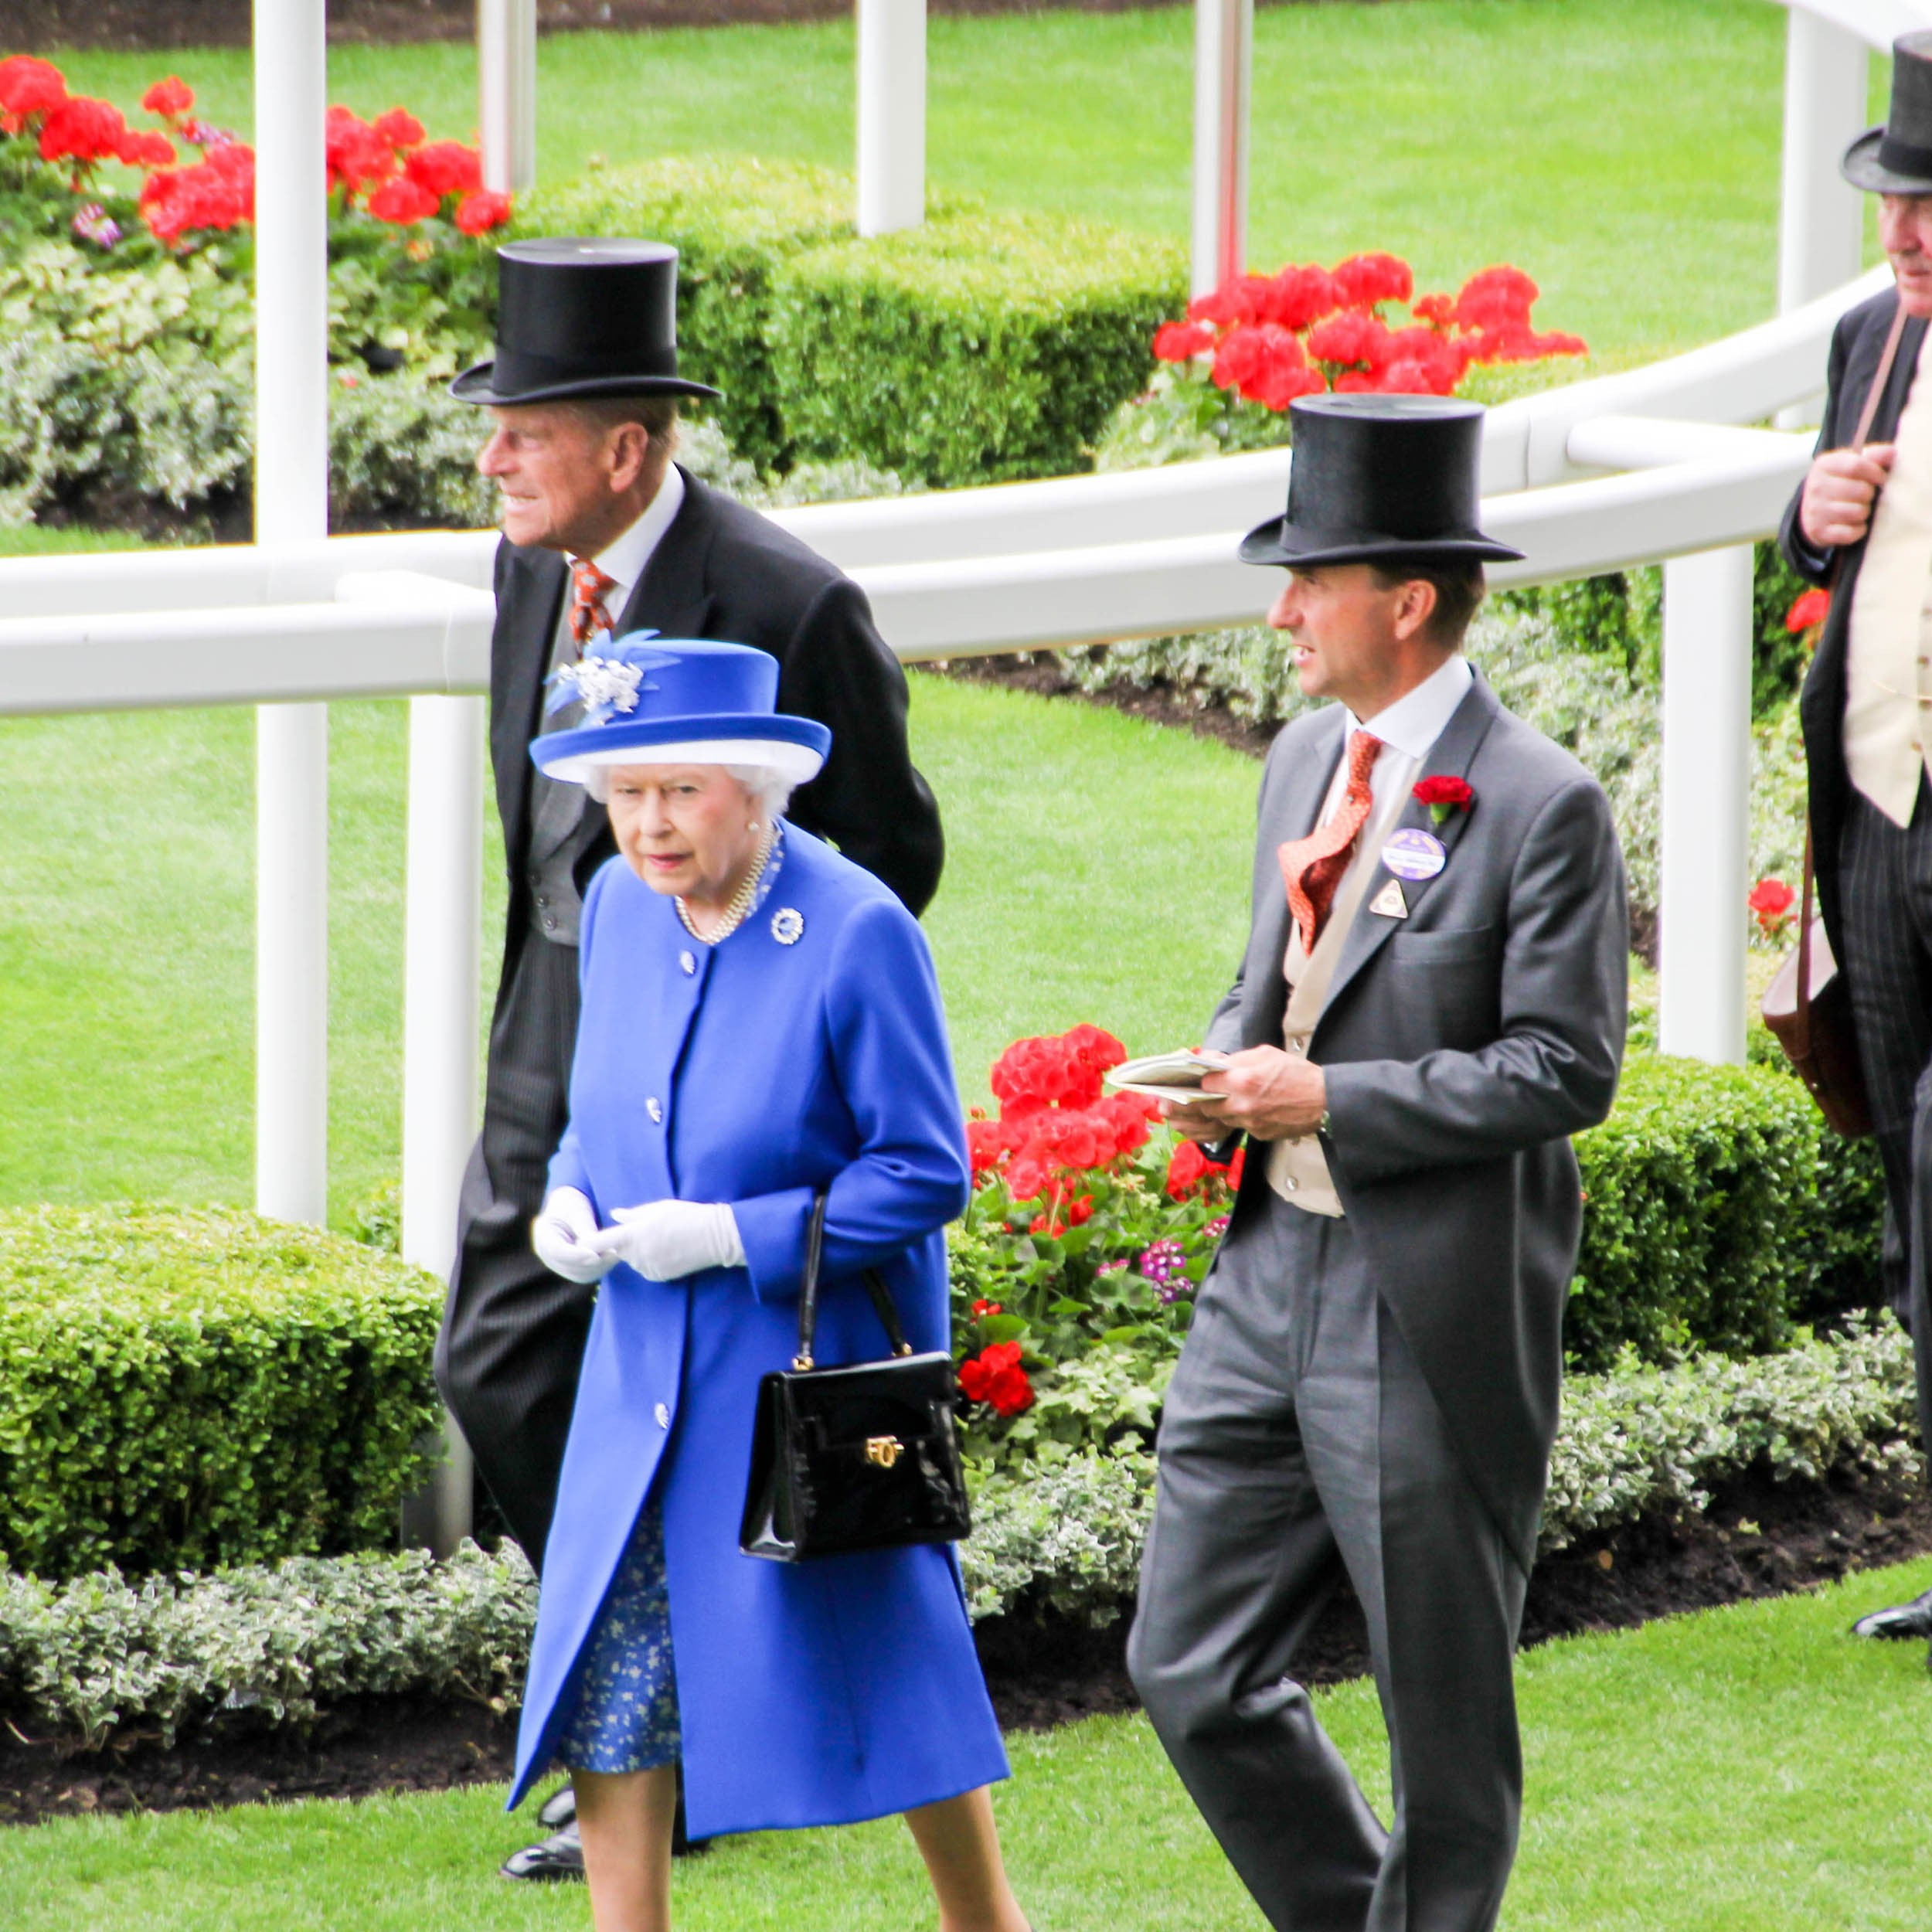 THE QUEEN'S 90TH BIRTHDAY AND HER FAVOURITE JEWELS, THE ROYAL ASCOT